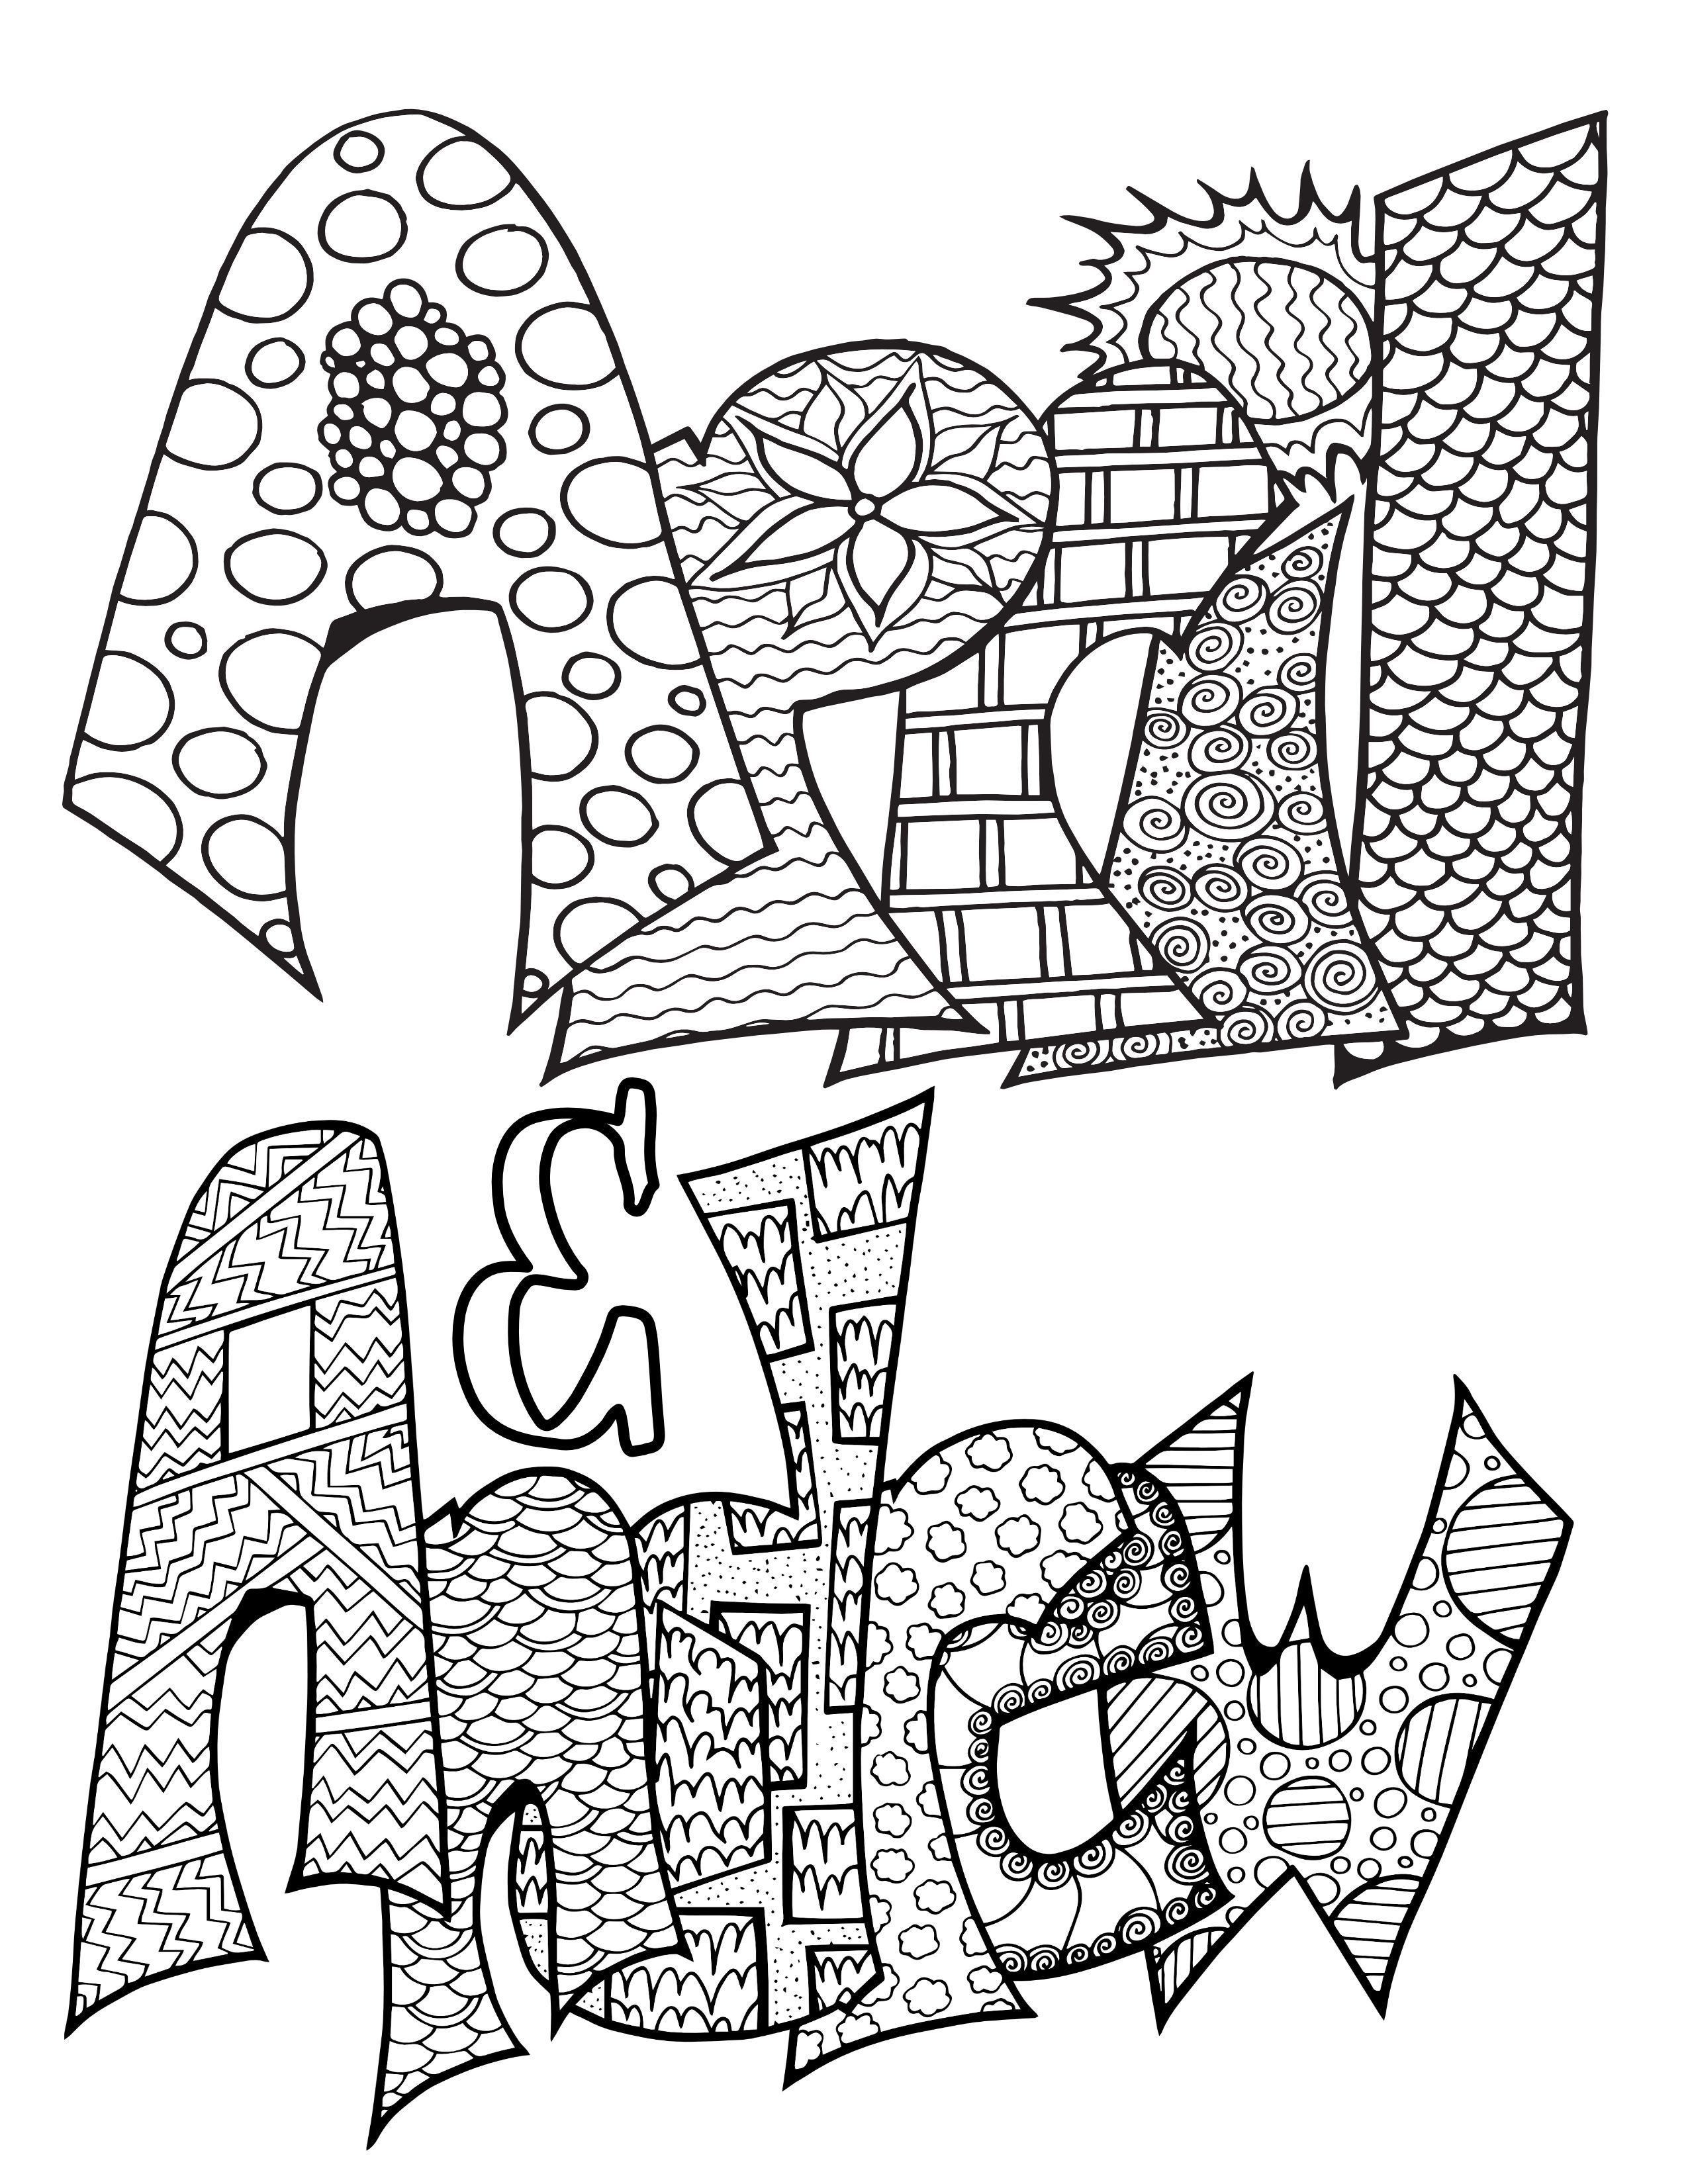 Custom Couples Coloring Pages For Valentine S Day Personalized Coloring Book Name Coloring Pages Printable Valentines Coloring Pages [ 3300 x 2550 Pixel ]